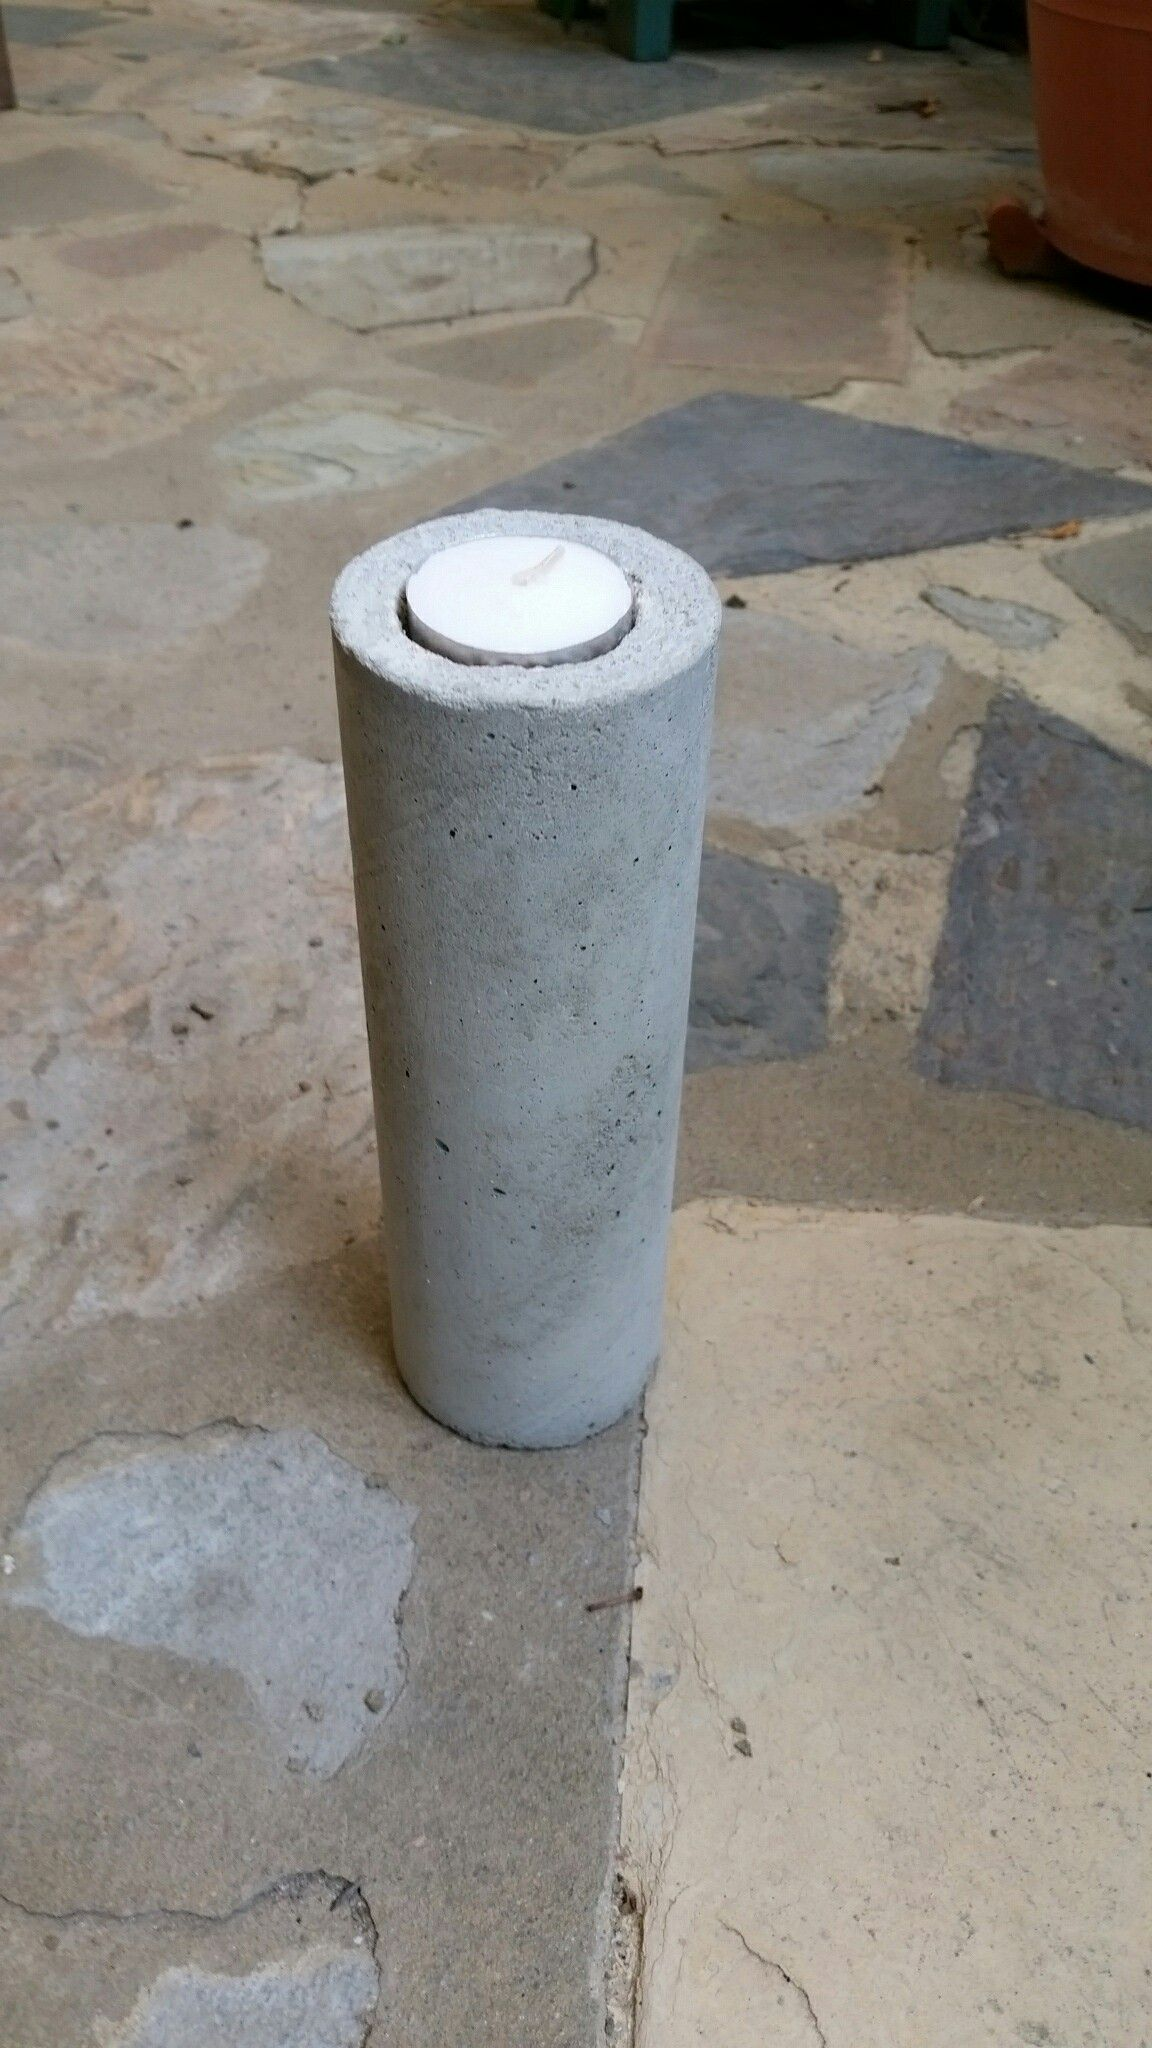 Cement candle holder made using Pringle chip container